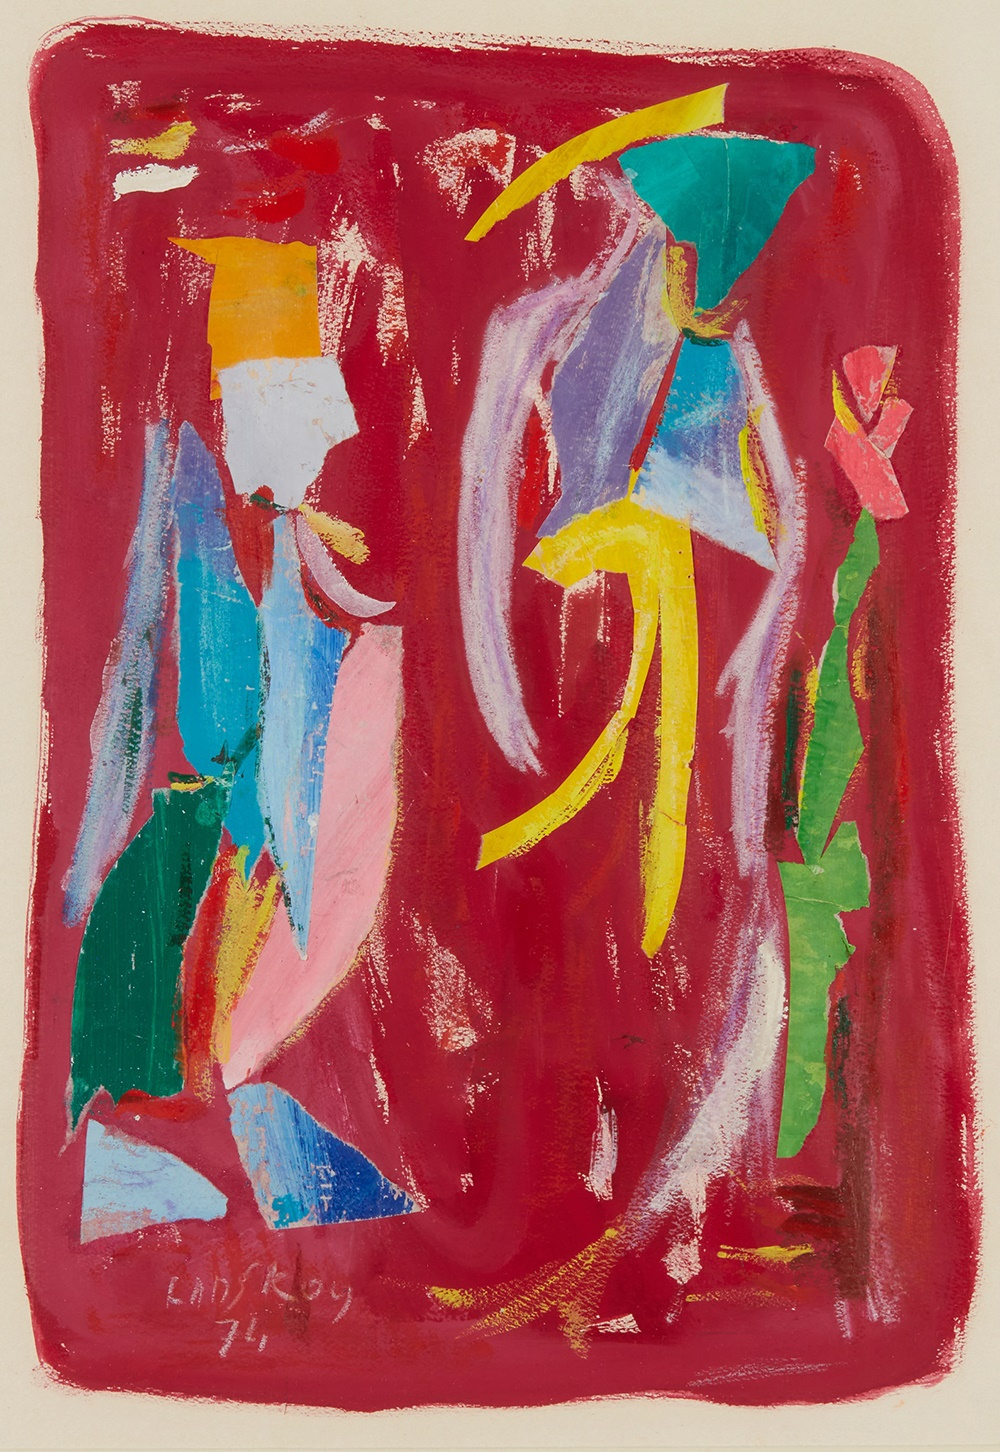 LOT 31 | ANDRE LANSKOY (RUSSIAN 1902-1976) | UNTITLED (FIGURES ON A PINK GROUND) Signed and dated '74 lower left, collage and mixed media on paper | 50cm x 35cm (19.5in x 13.75in) | £800 - £1,200 + fees